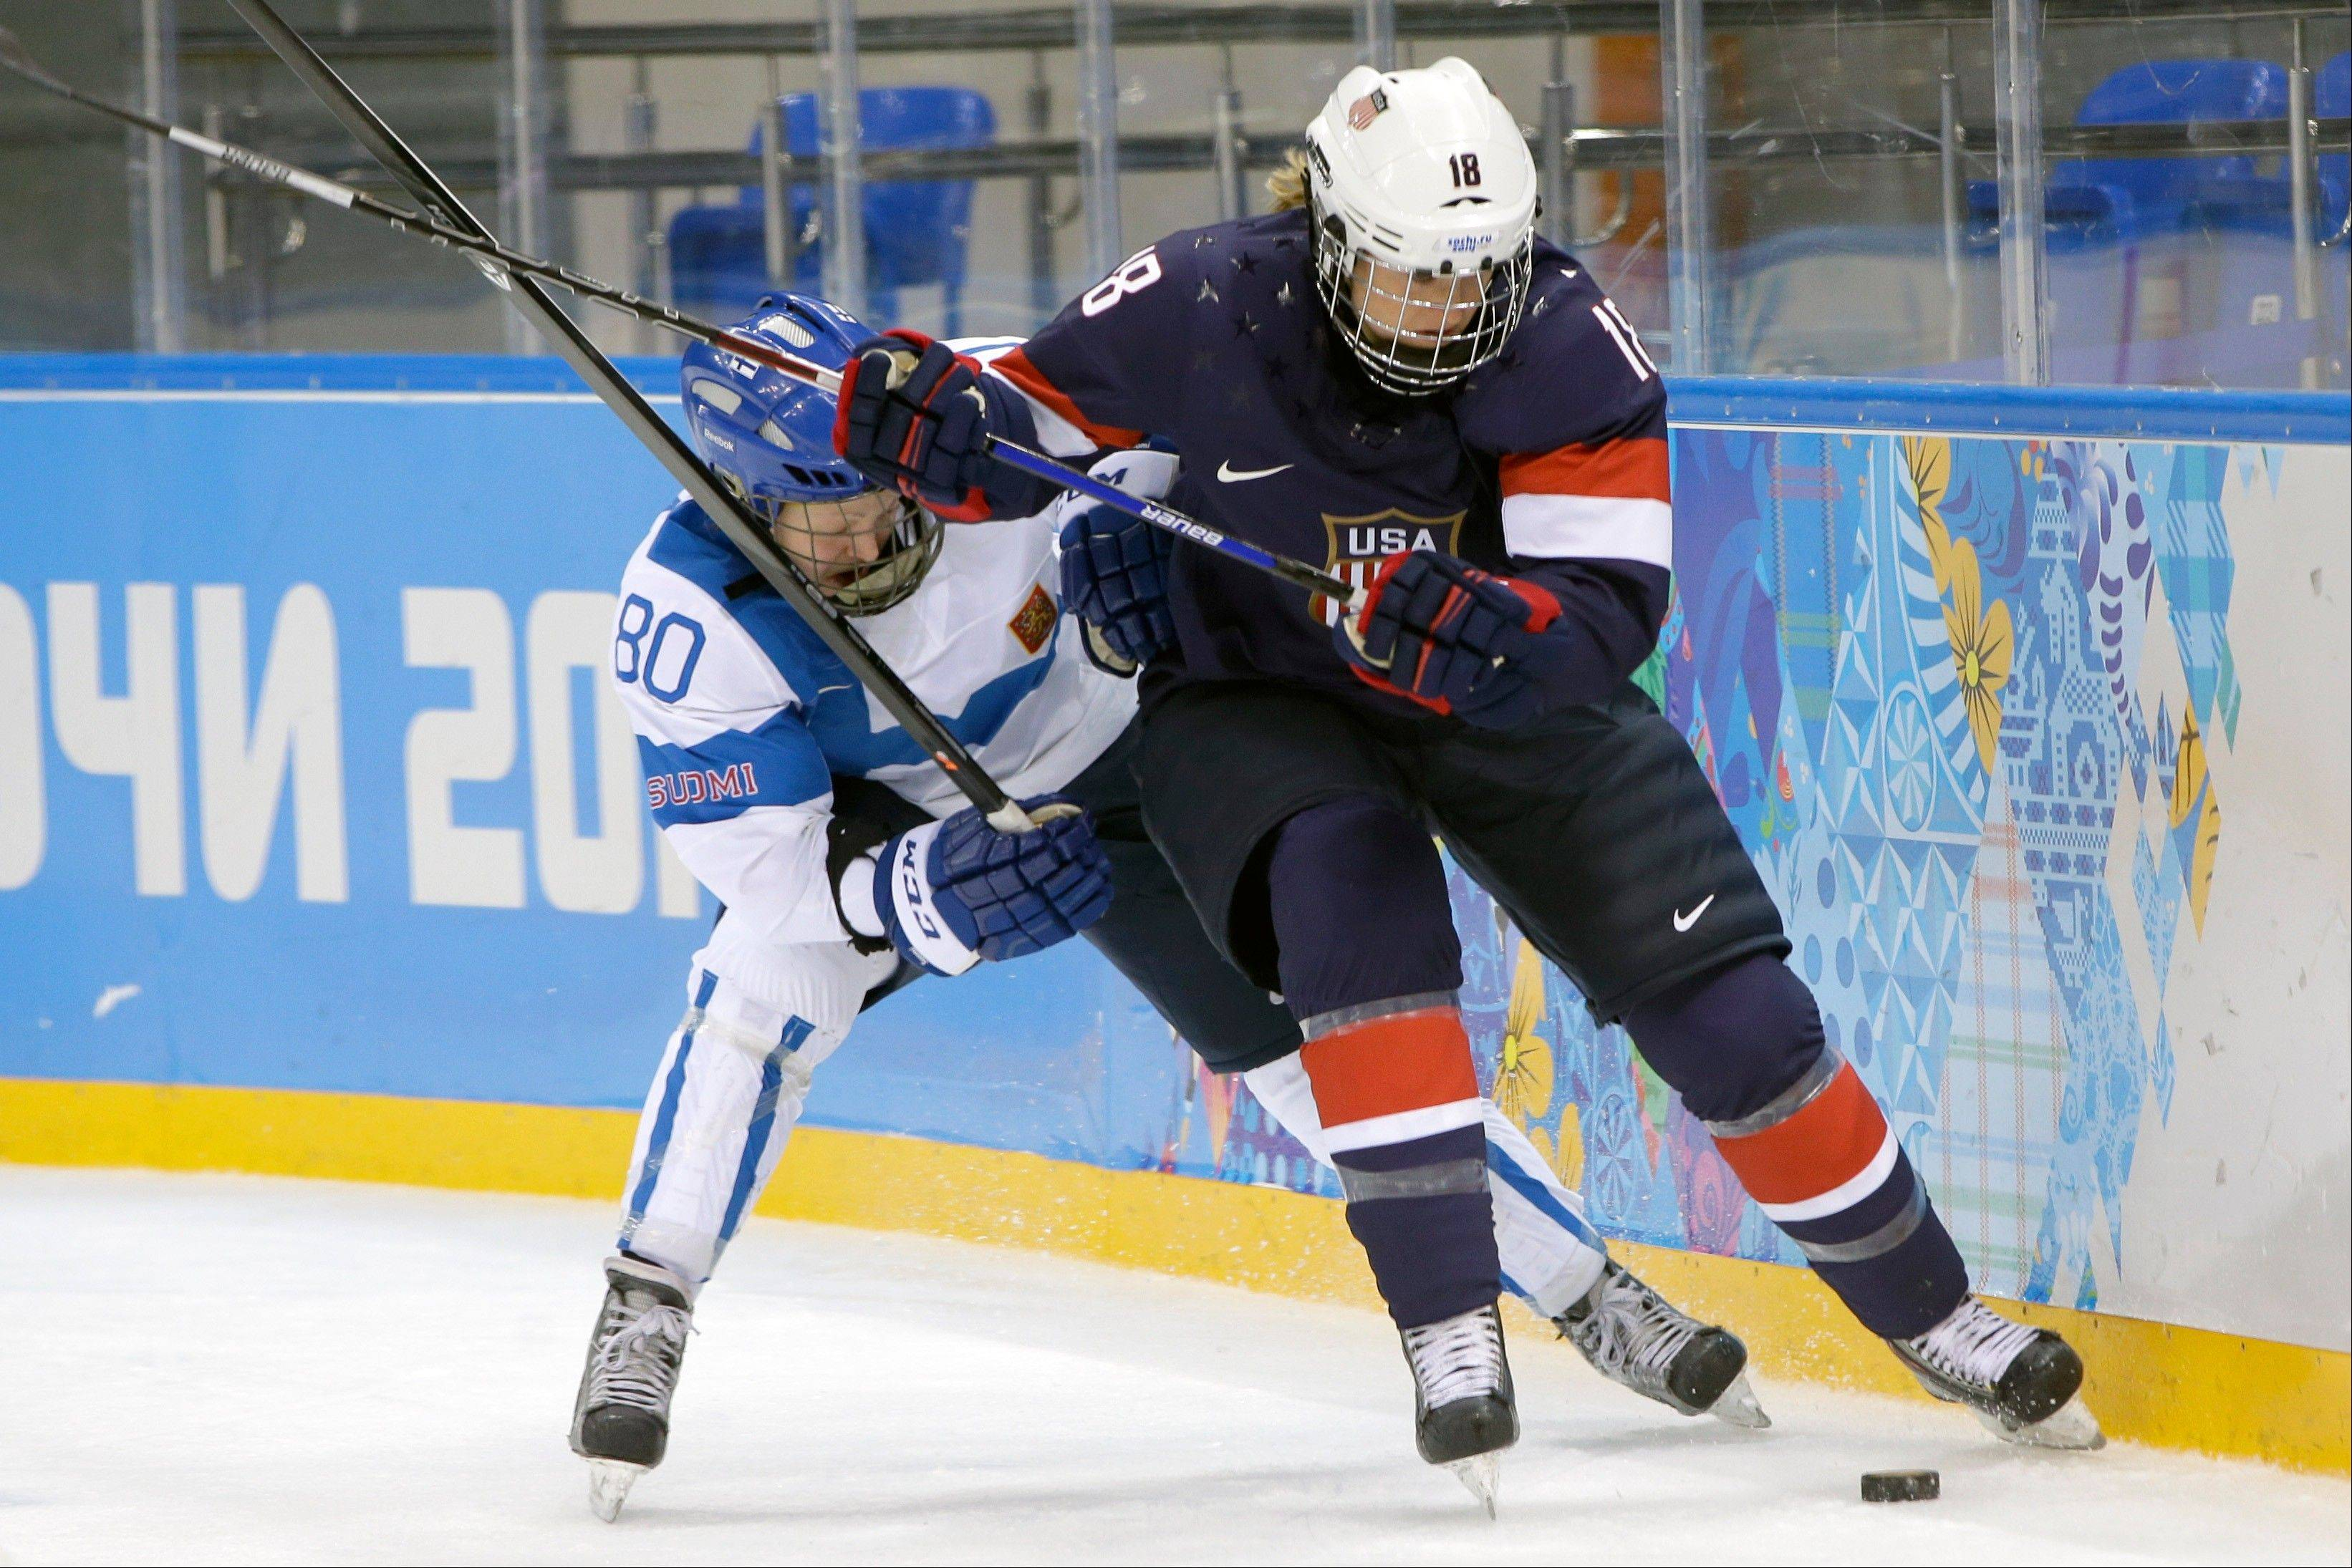 Tea Villila of Finland and Lyndsey Fry of the United States battle for control of the puck behind the net during the third period of the women's ice hockey game at the Shayba Arena during the 2014 Winter Olympics, Saturday, Feb. 8, 2014, in Sochi, Russia.